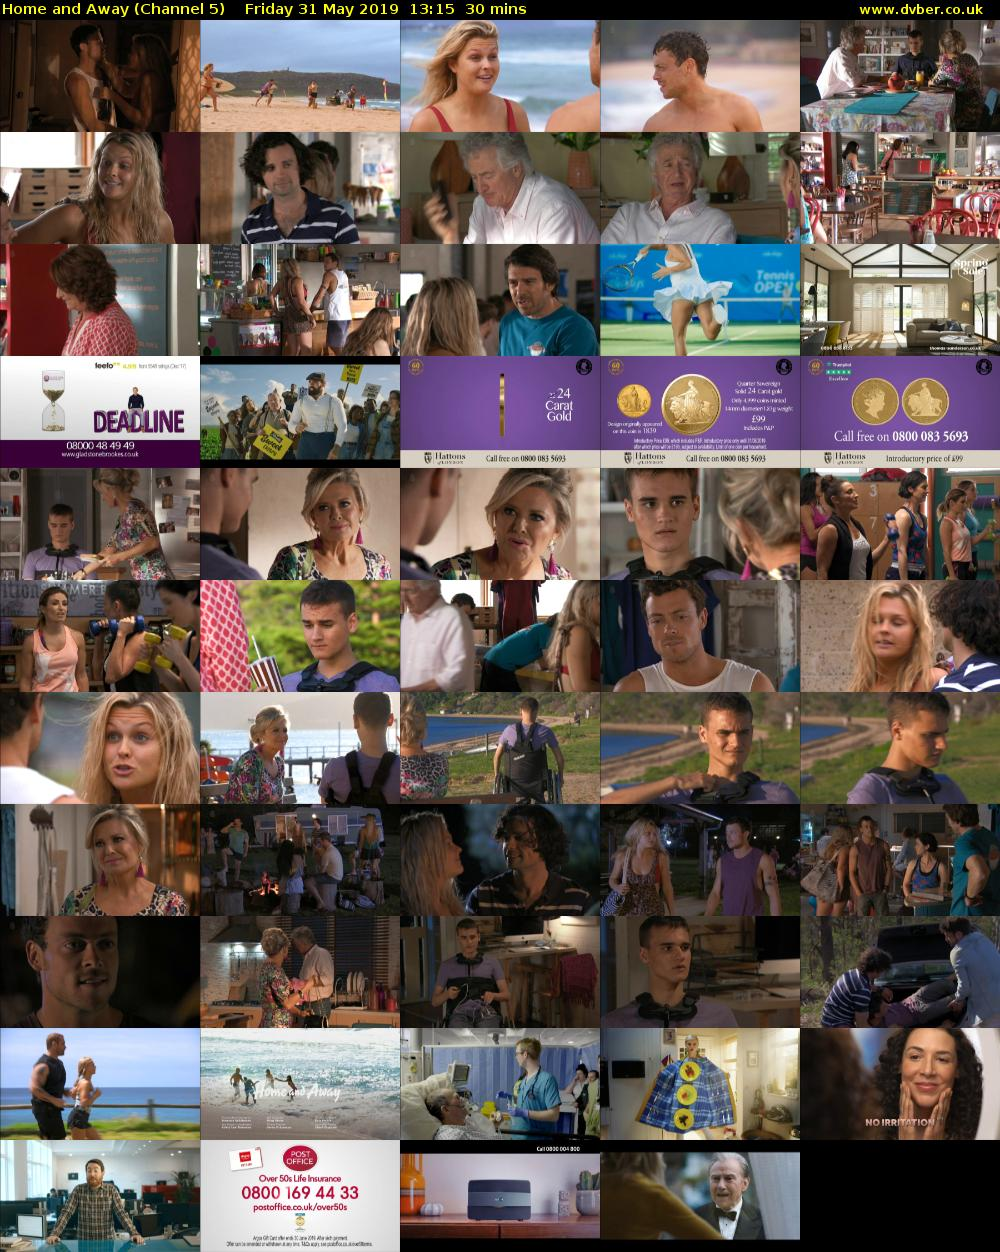 Home and Away (Channel 5) - 2019-05-31-1315